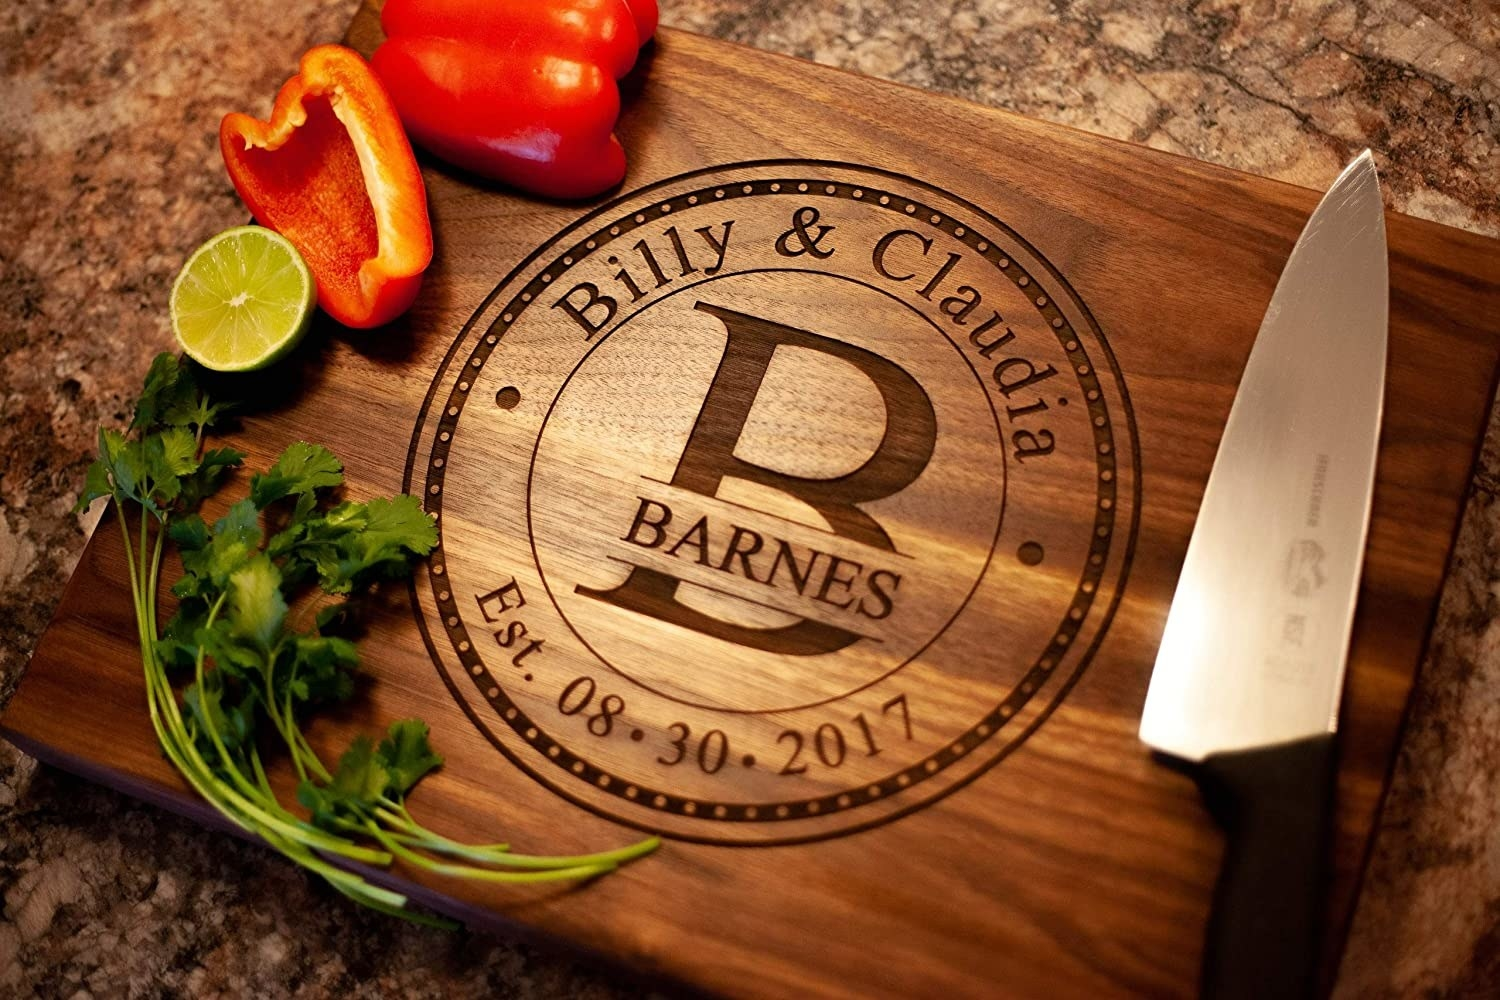 """the wooden cutting board with a knife and veggies that says """"Billy and Claudia Barnes"""""""